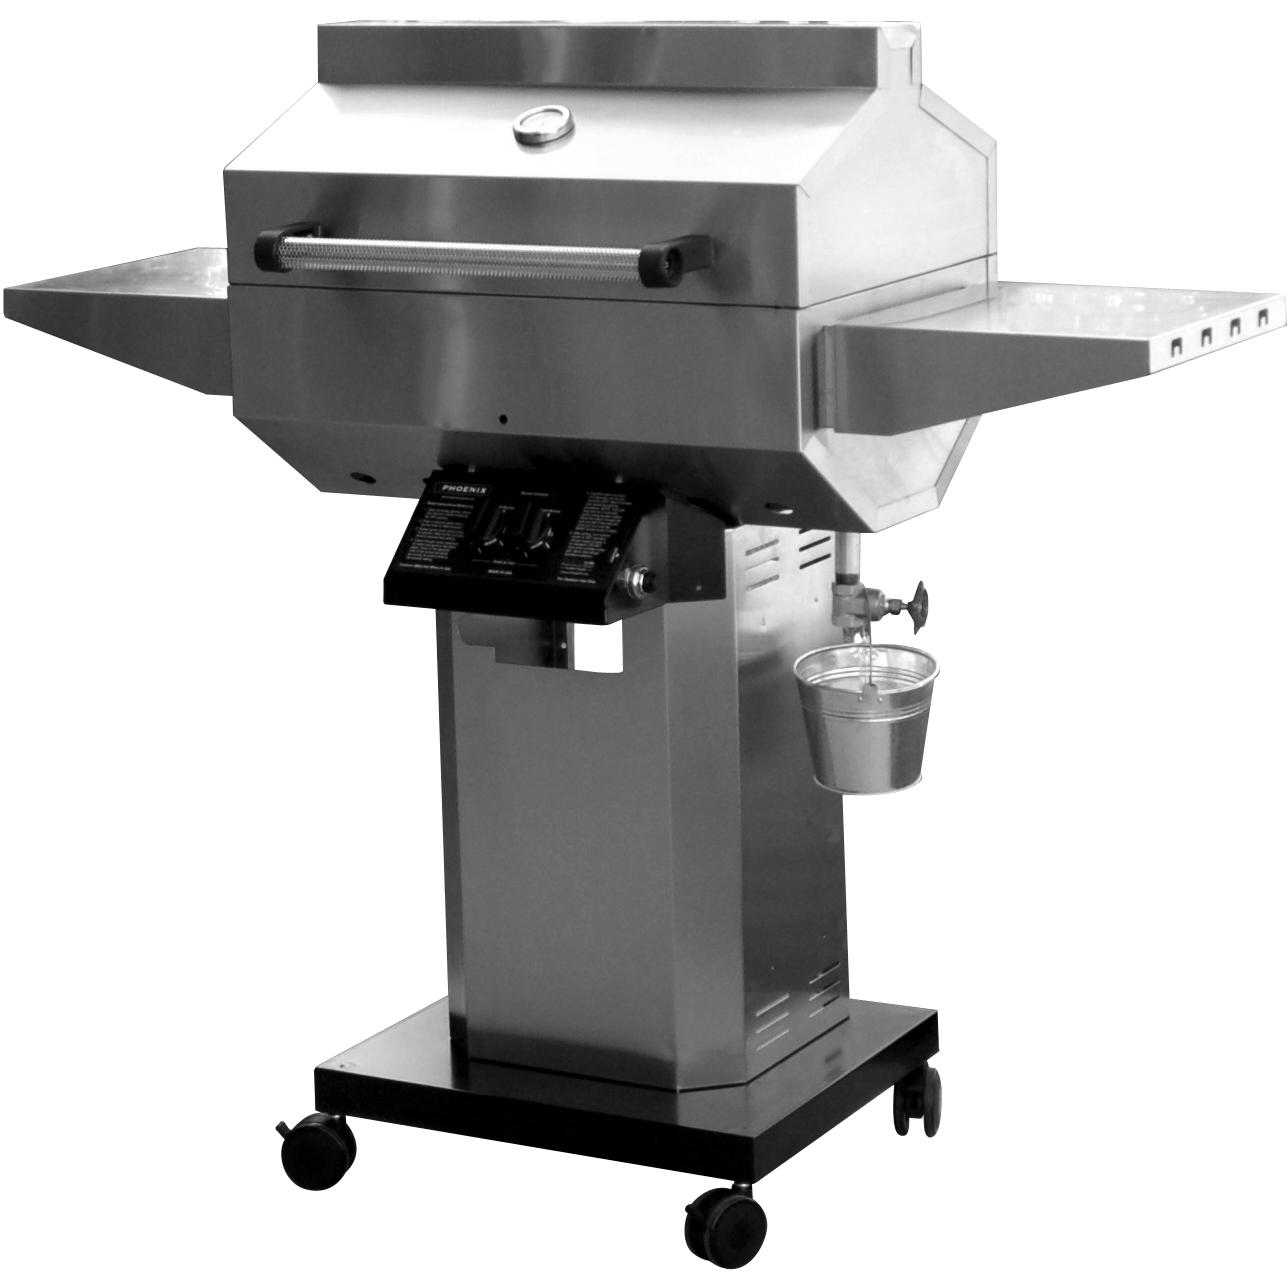 deals phoenix grill sd stainless steel natural gas grill head on stainless steel pedestal cart. Black Bedroom Furniture Sets. Home Design Ideas